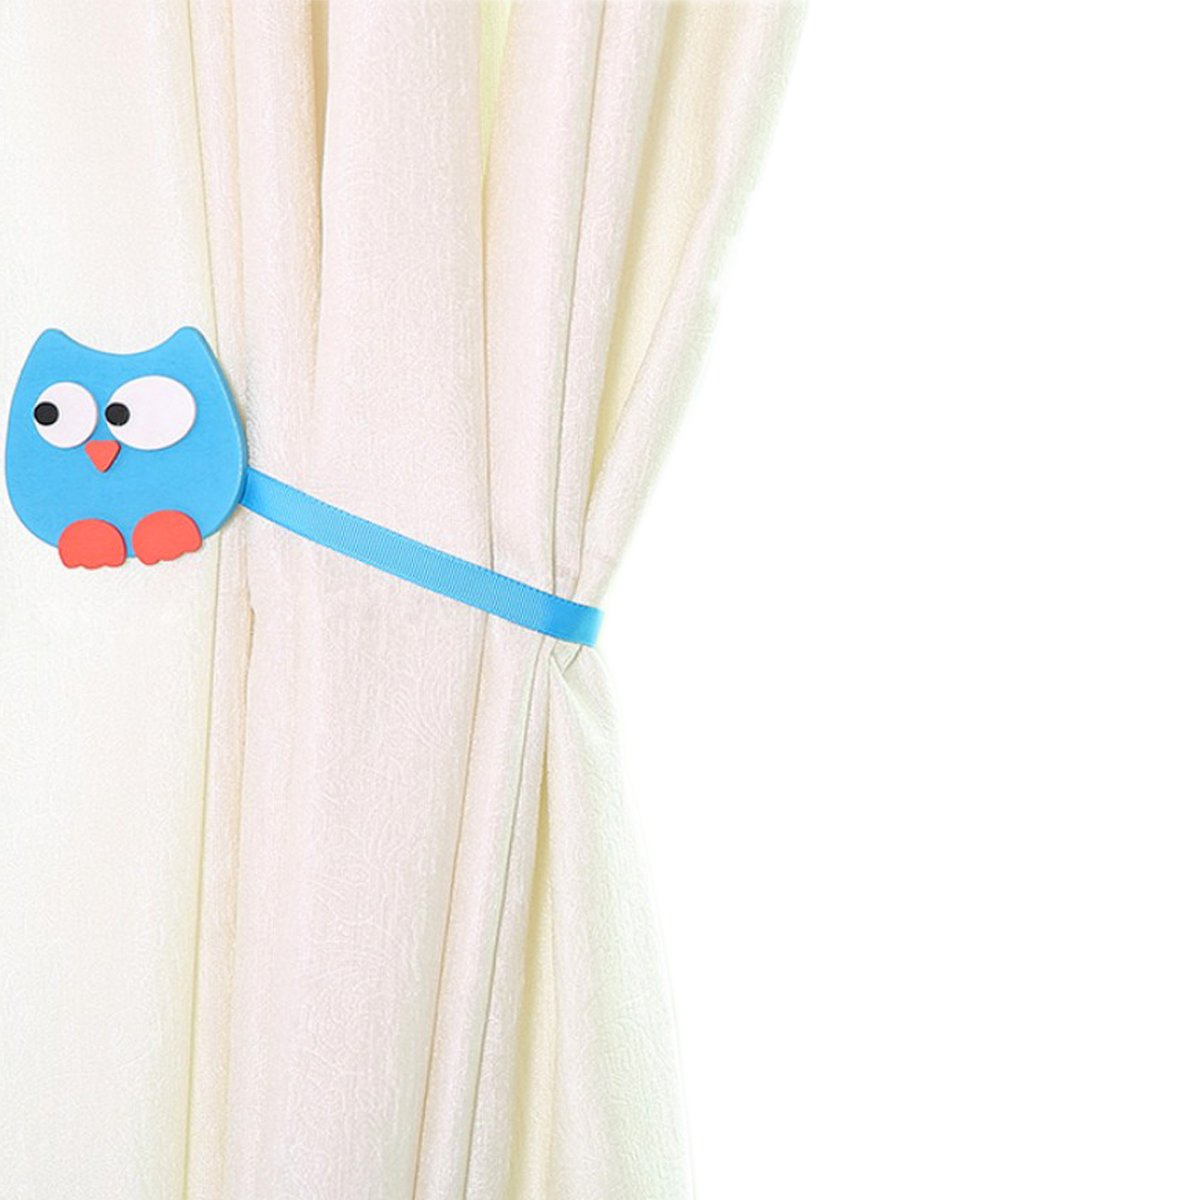 YING CHIC YYC 2 Pcs Cute Owl Magnetic Curtain Buckle Tieback Kid's Room Drapey Holder Ribbon Rope (Blue)